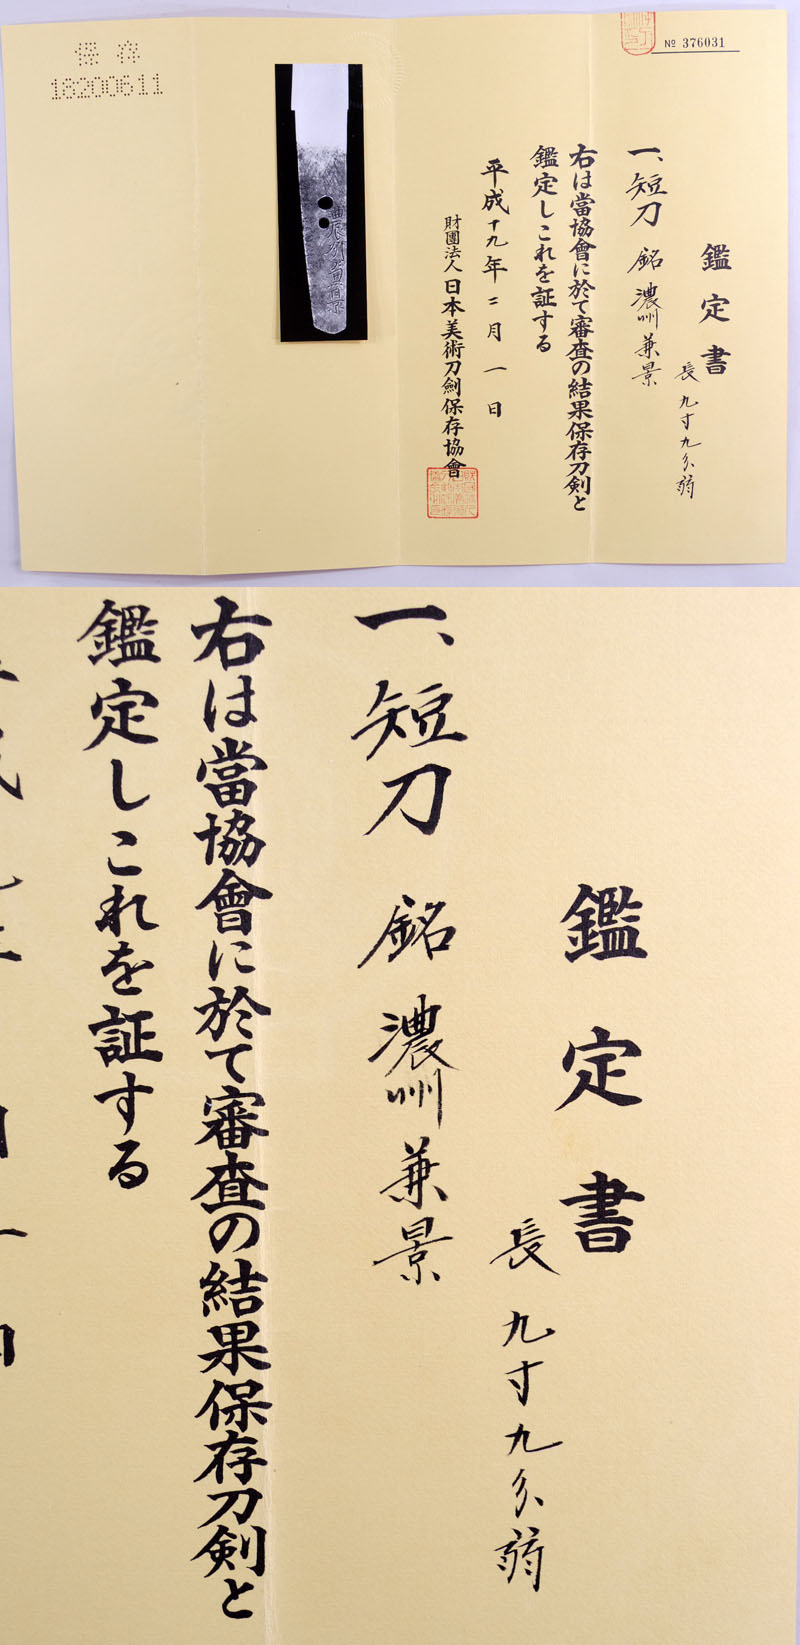 濃州兼景 Picture of Certificate